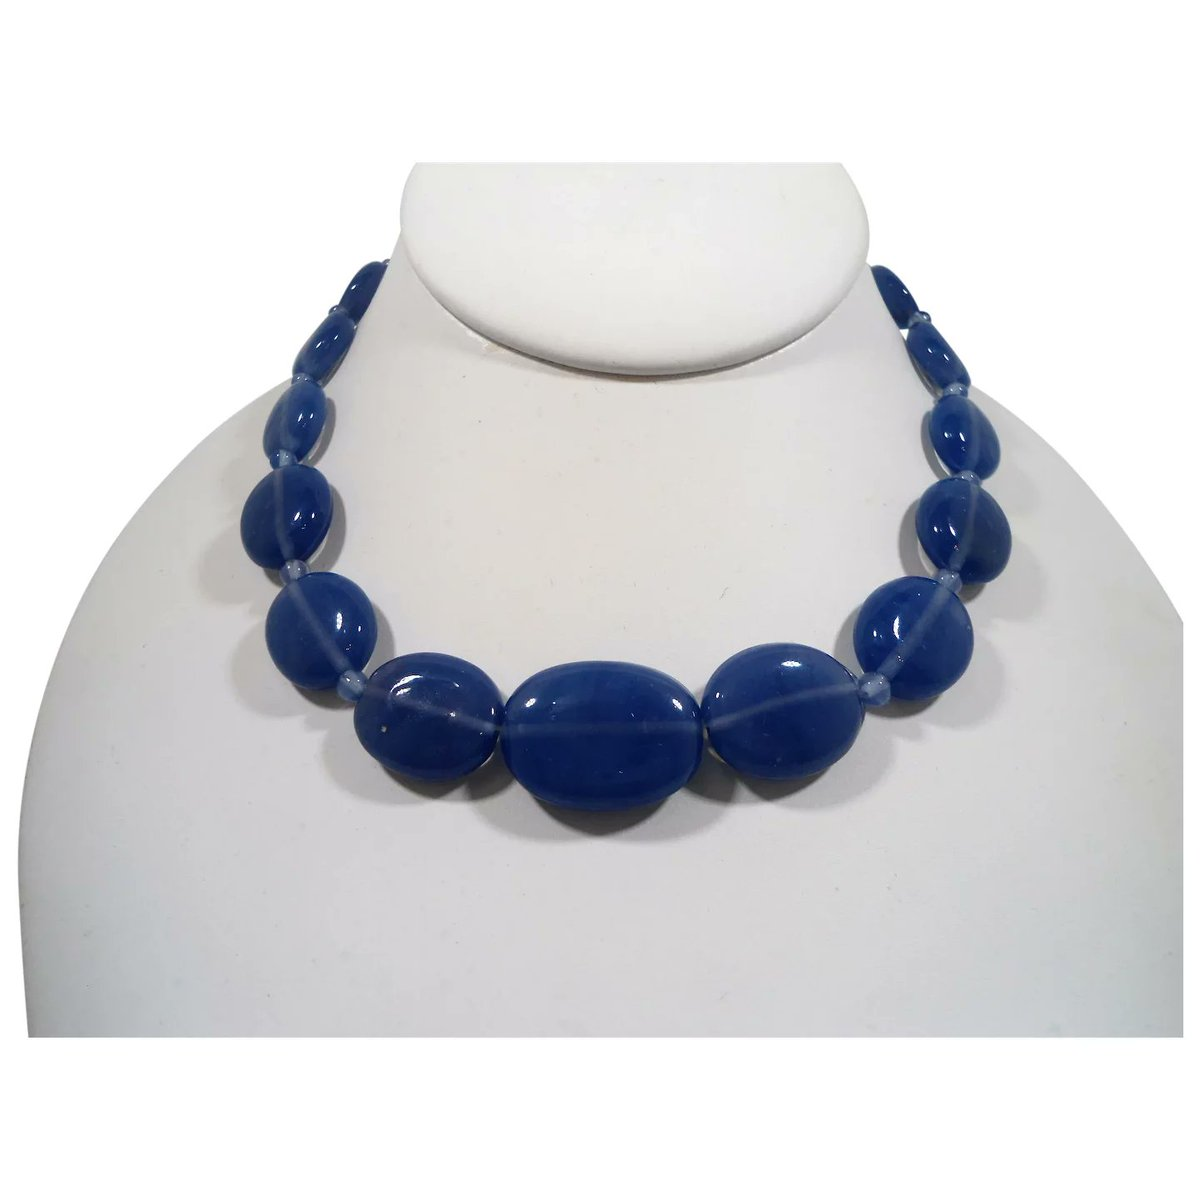 Blue Oval Shaped Glass Beaded Choker Necklace #rubylane #vintage #jewelry #glass #beads #necklace #giftideas #treatmyself #treatyourself #fashionista #givevintage